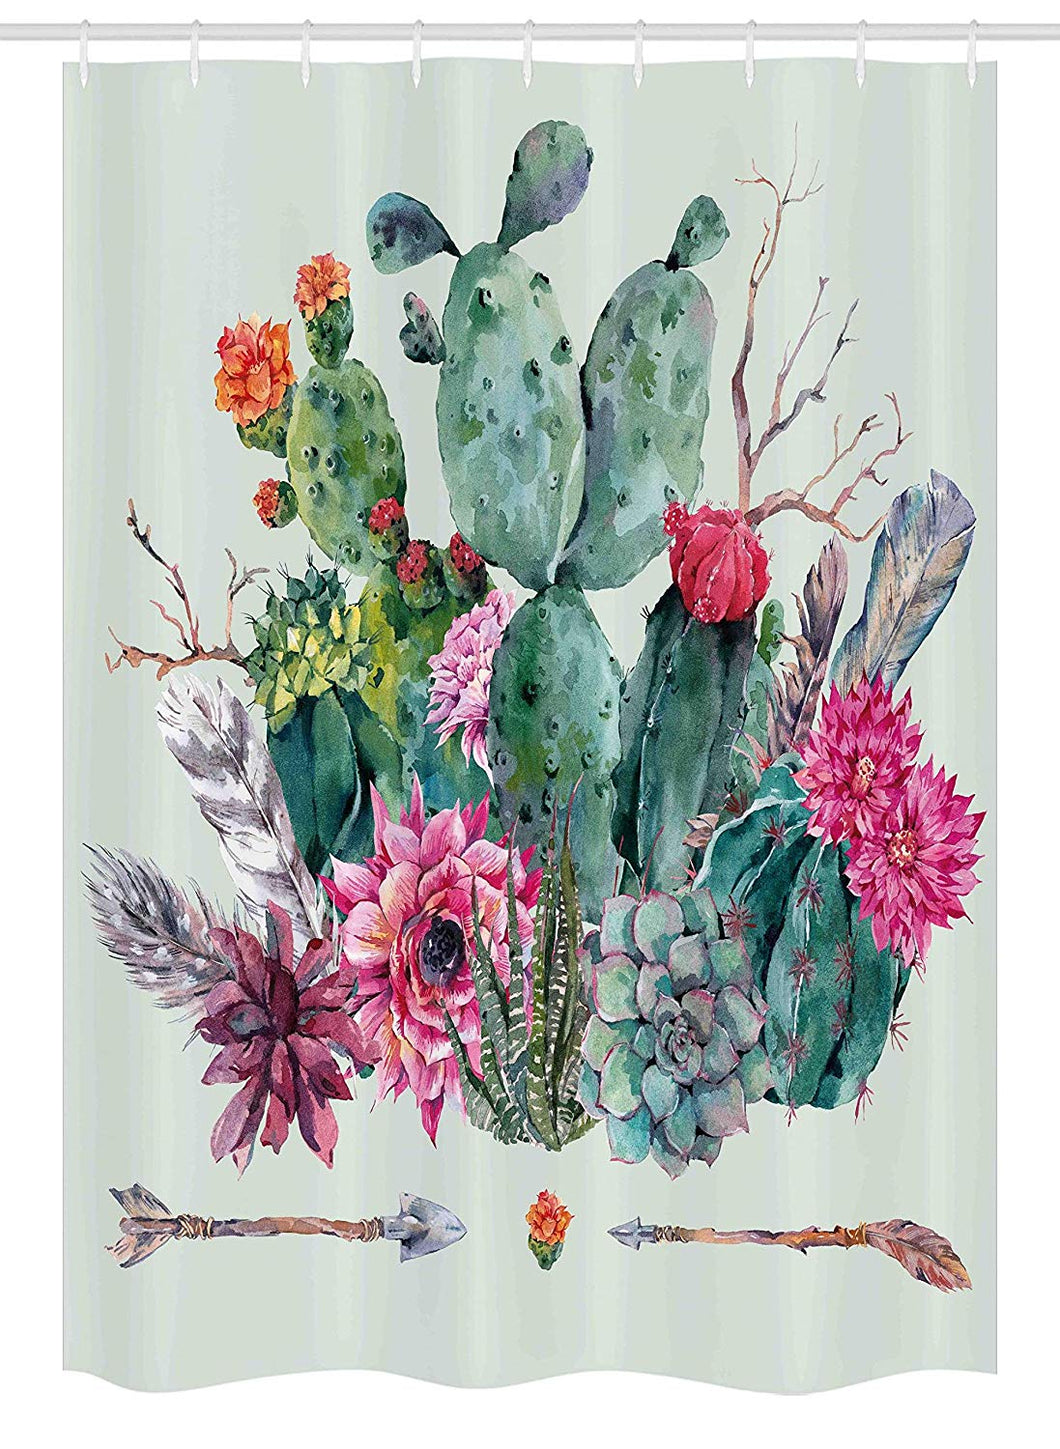 Ambesonne Cactus Stall Shower Curtain, Spring Garden with Boho Style Bouquet of Thorny Plants Blossoms Arrows Feathers, Fabric Bathroom Decor Set with Hooks, 54